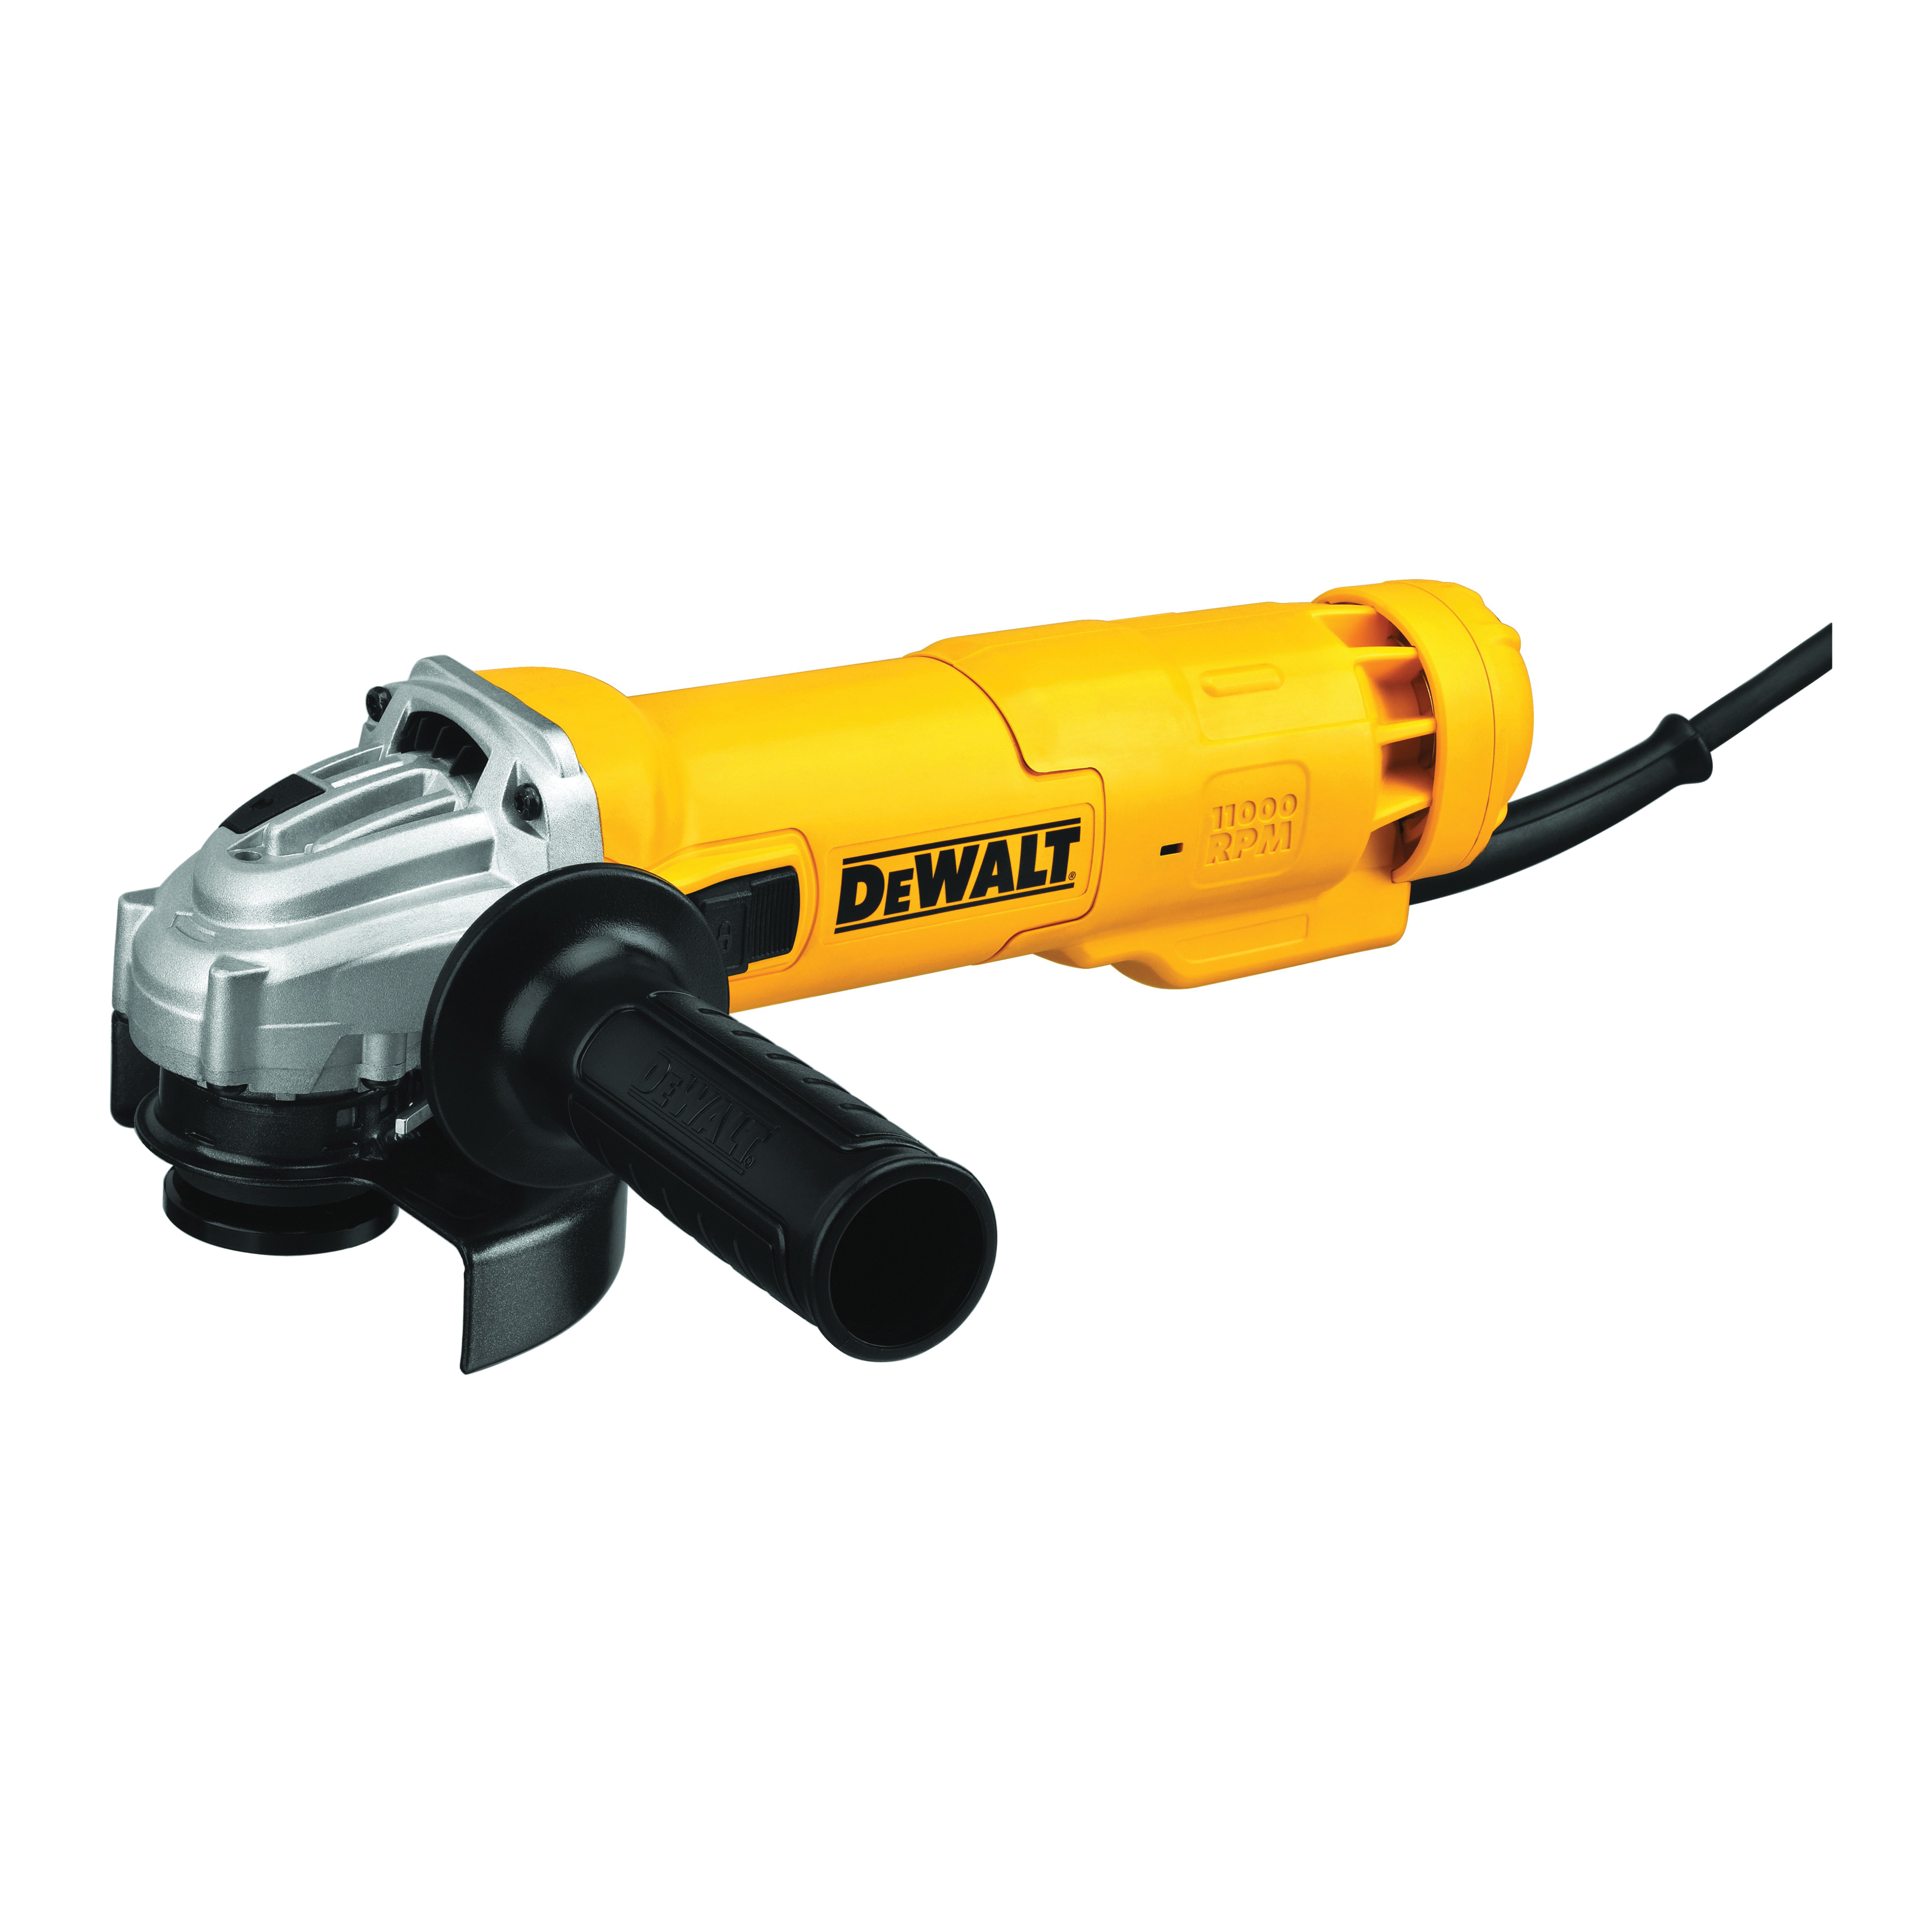 DeWALT® DWE4214 Low Profile Small Electric Angle Grinder, 4-1/2 in Dia Wheel, 5/8-11 UNC Arbor/Shank, 120 VAC, For Wheel: Quick-Change™, Black/Yellow, Lock-On Slide Switch